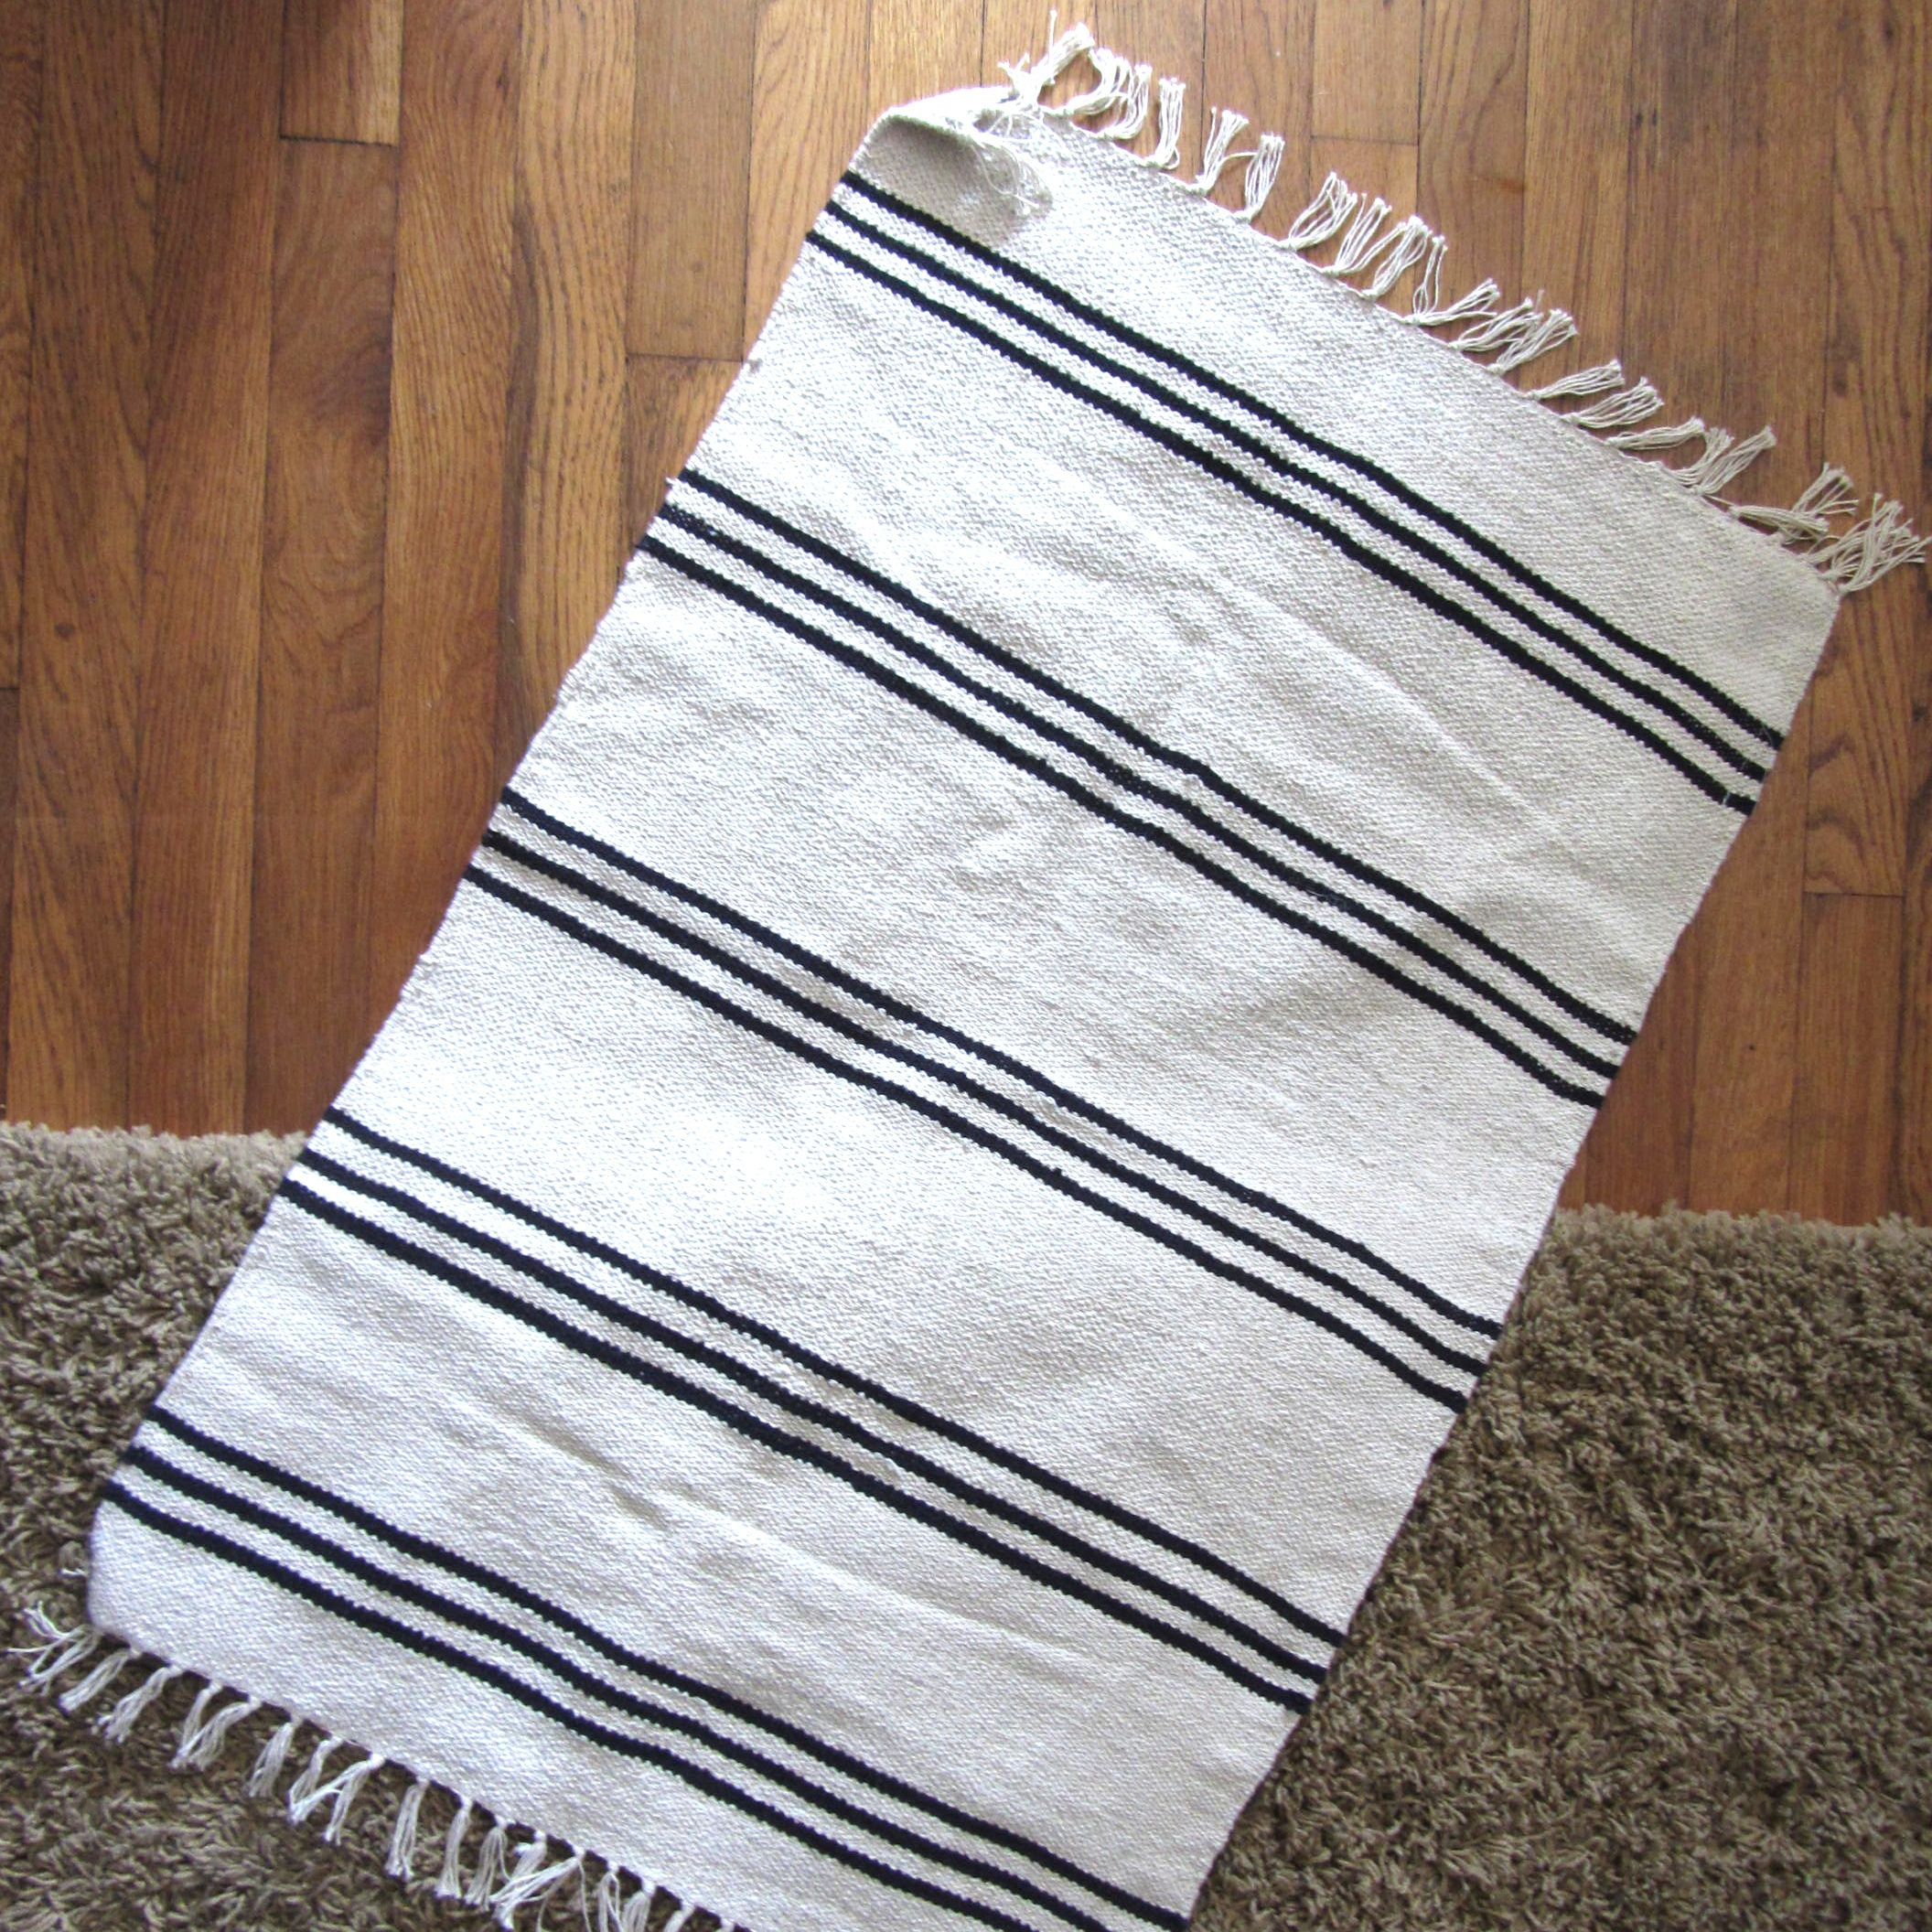 Ikea Stockholm Rug Flatwoven Black Handmade Striped Off White Ikea Signe Rug Soft-sided Storage Bin | For The Home